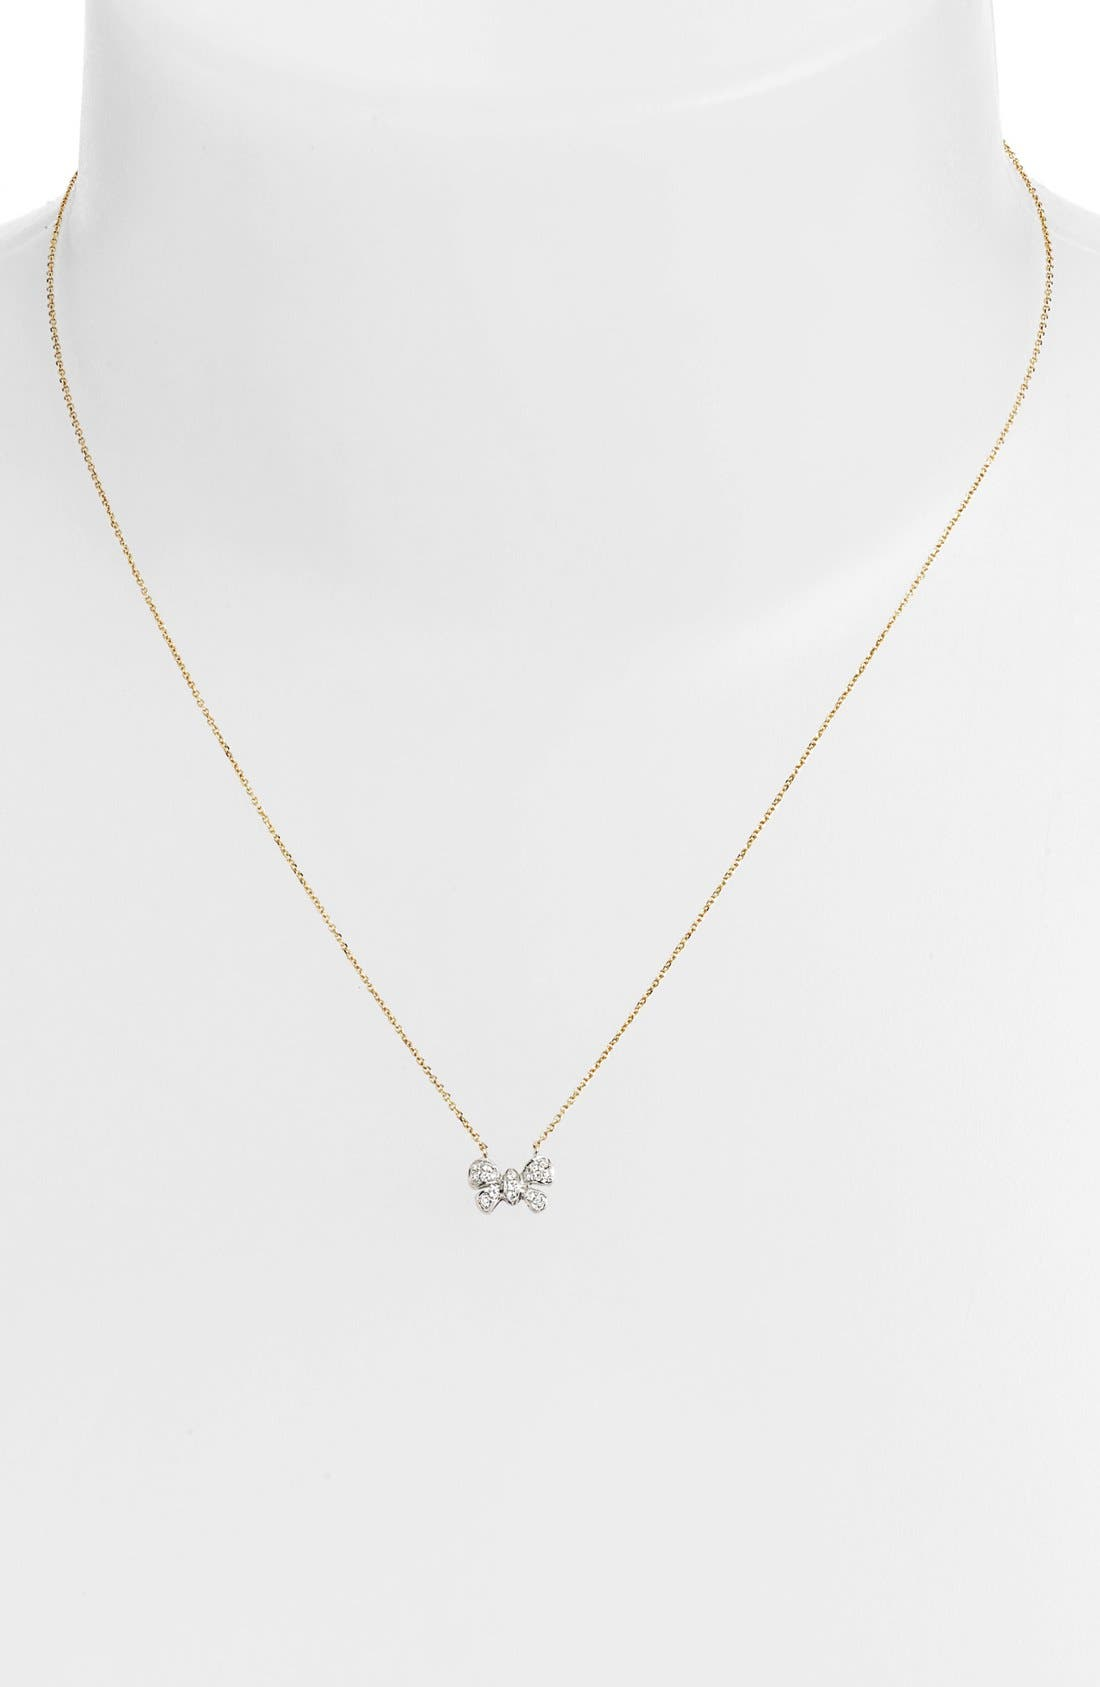 Main Image - Dana Rebecca Designs 'Margo Ashley' Diamond Bow Pendant Necklace